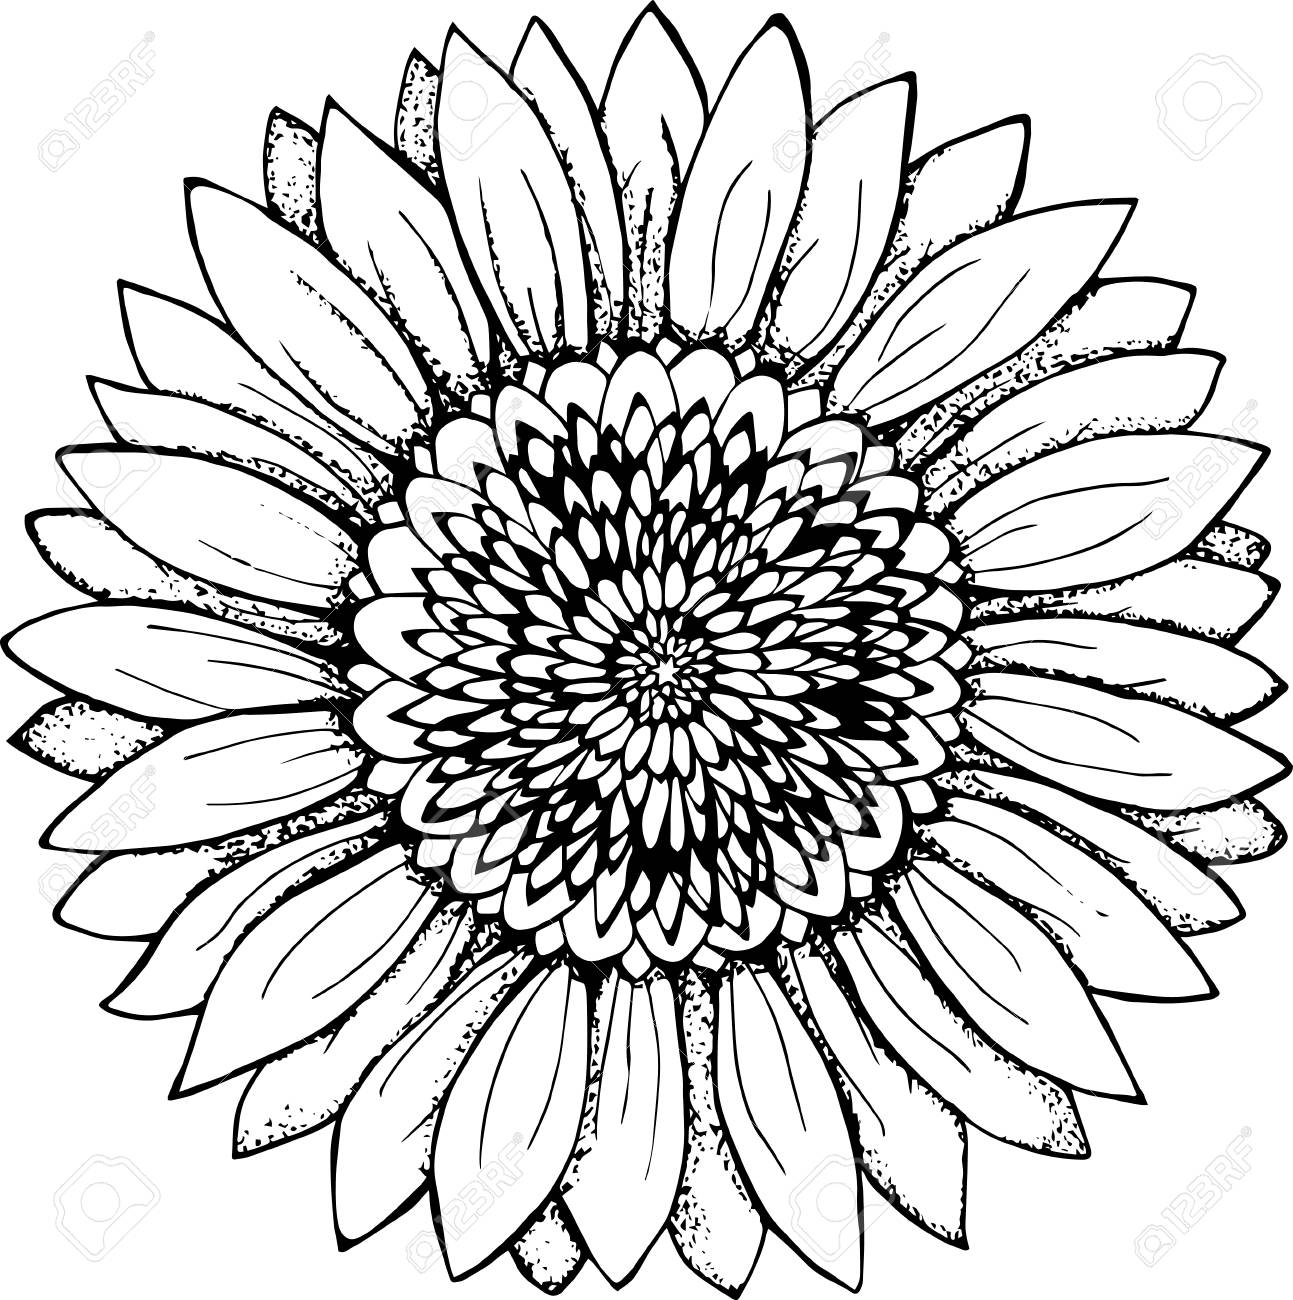 1293x1300 Black And White Picture Of A Sunflower. Flower Illustration